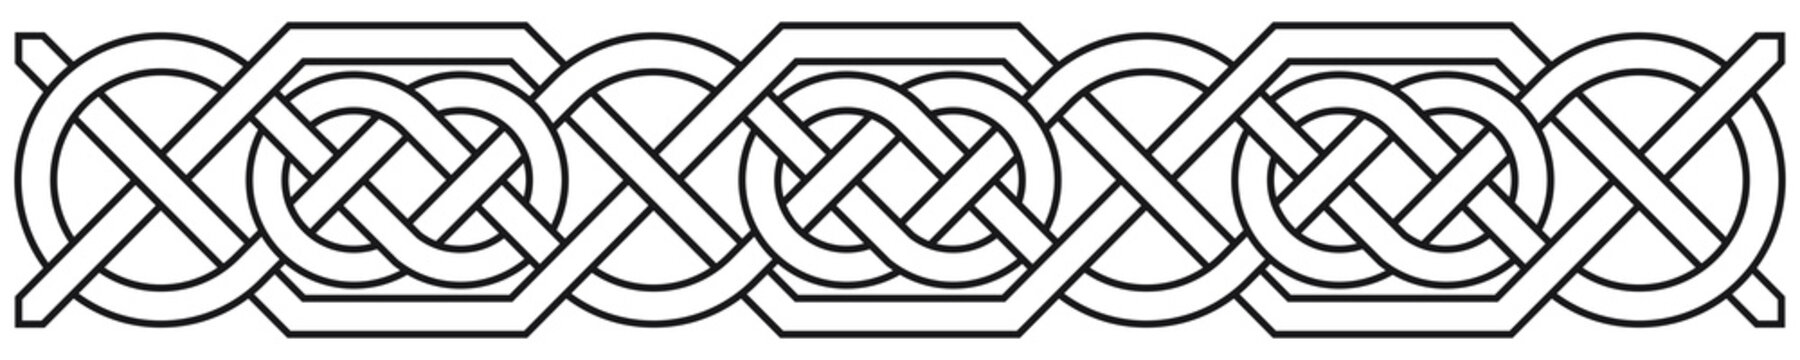 Celtic border with circles. Linear border made with Celtic knots for use in designs for St. Patrick's Day.